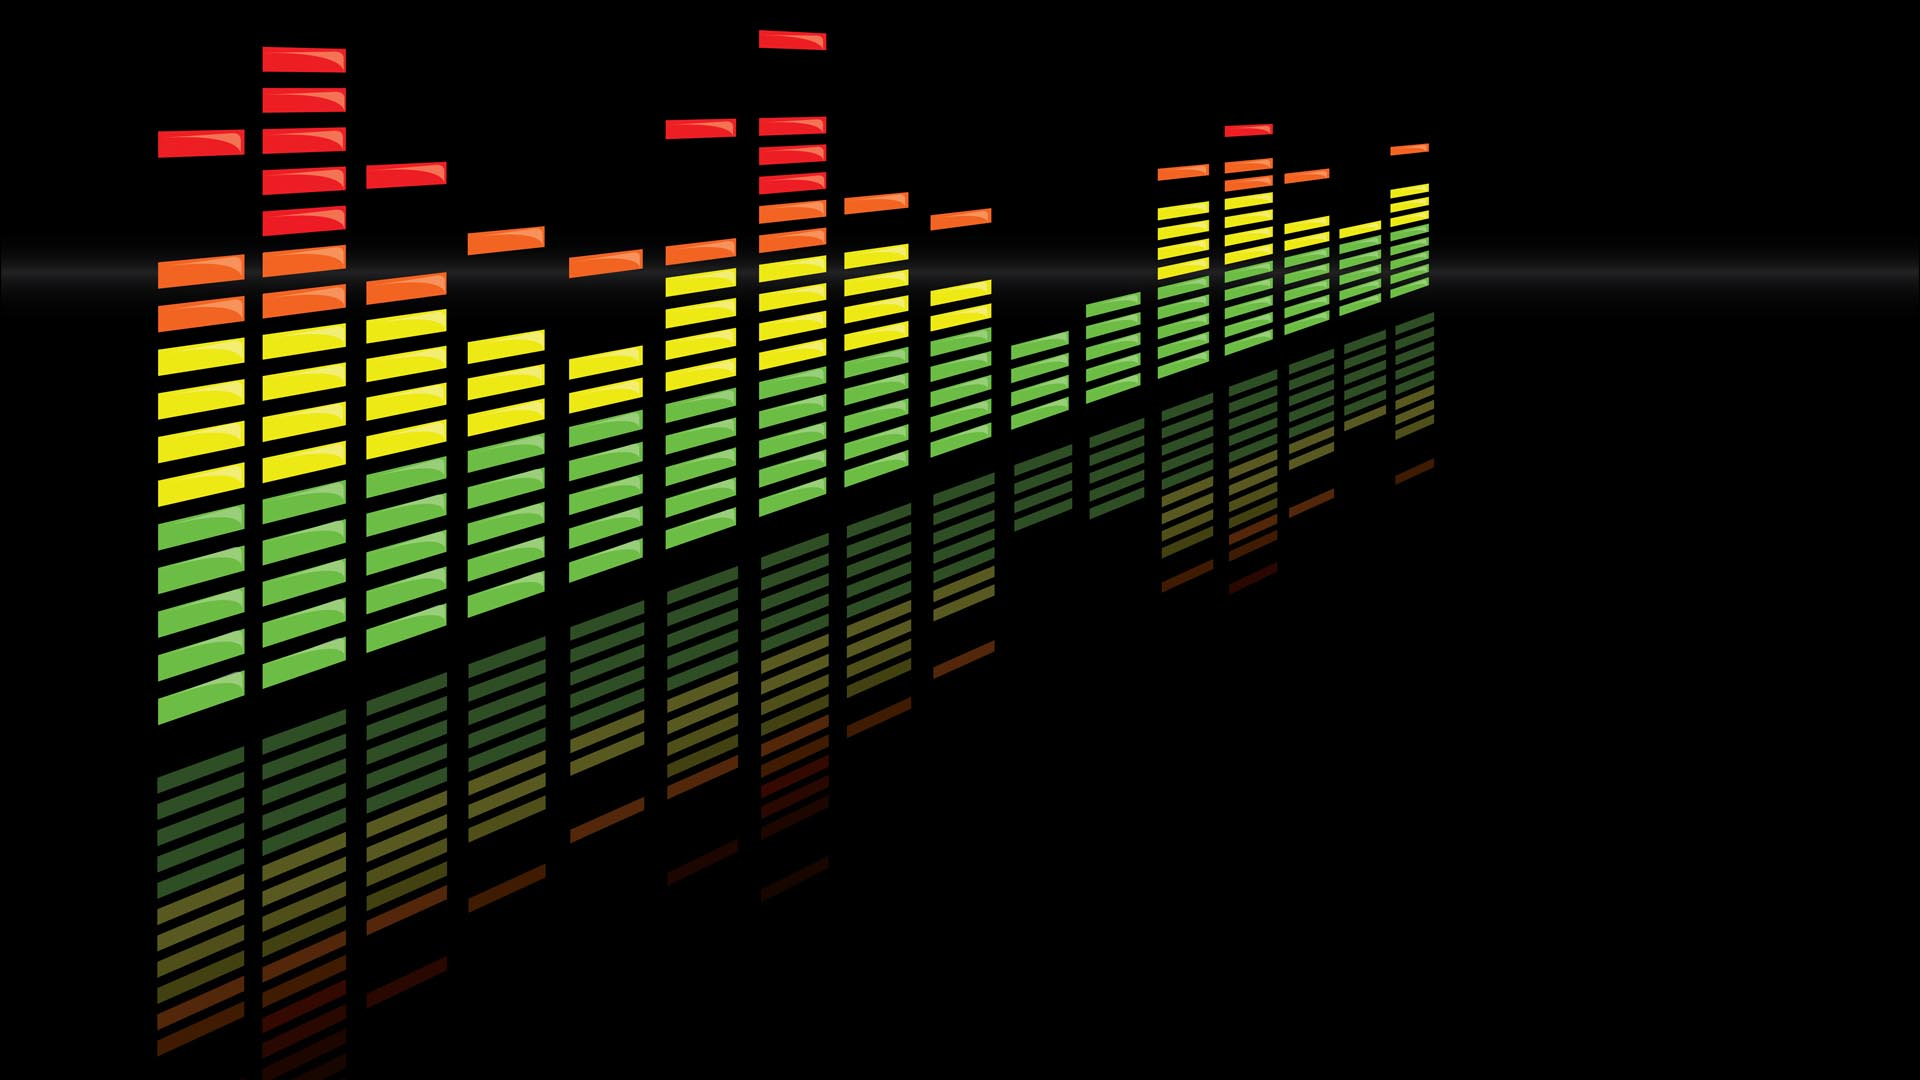 HD Wallpapers 1080p Music